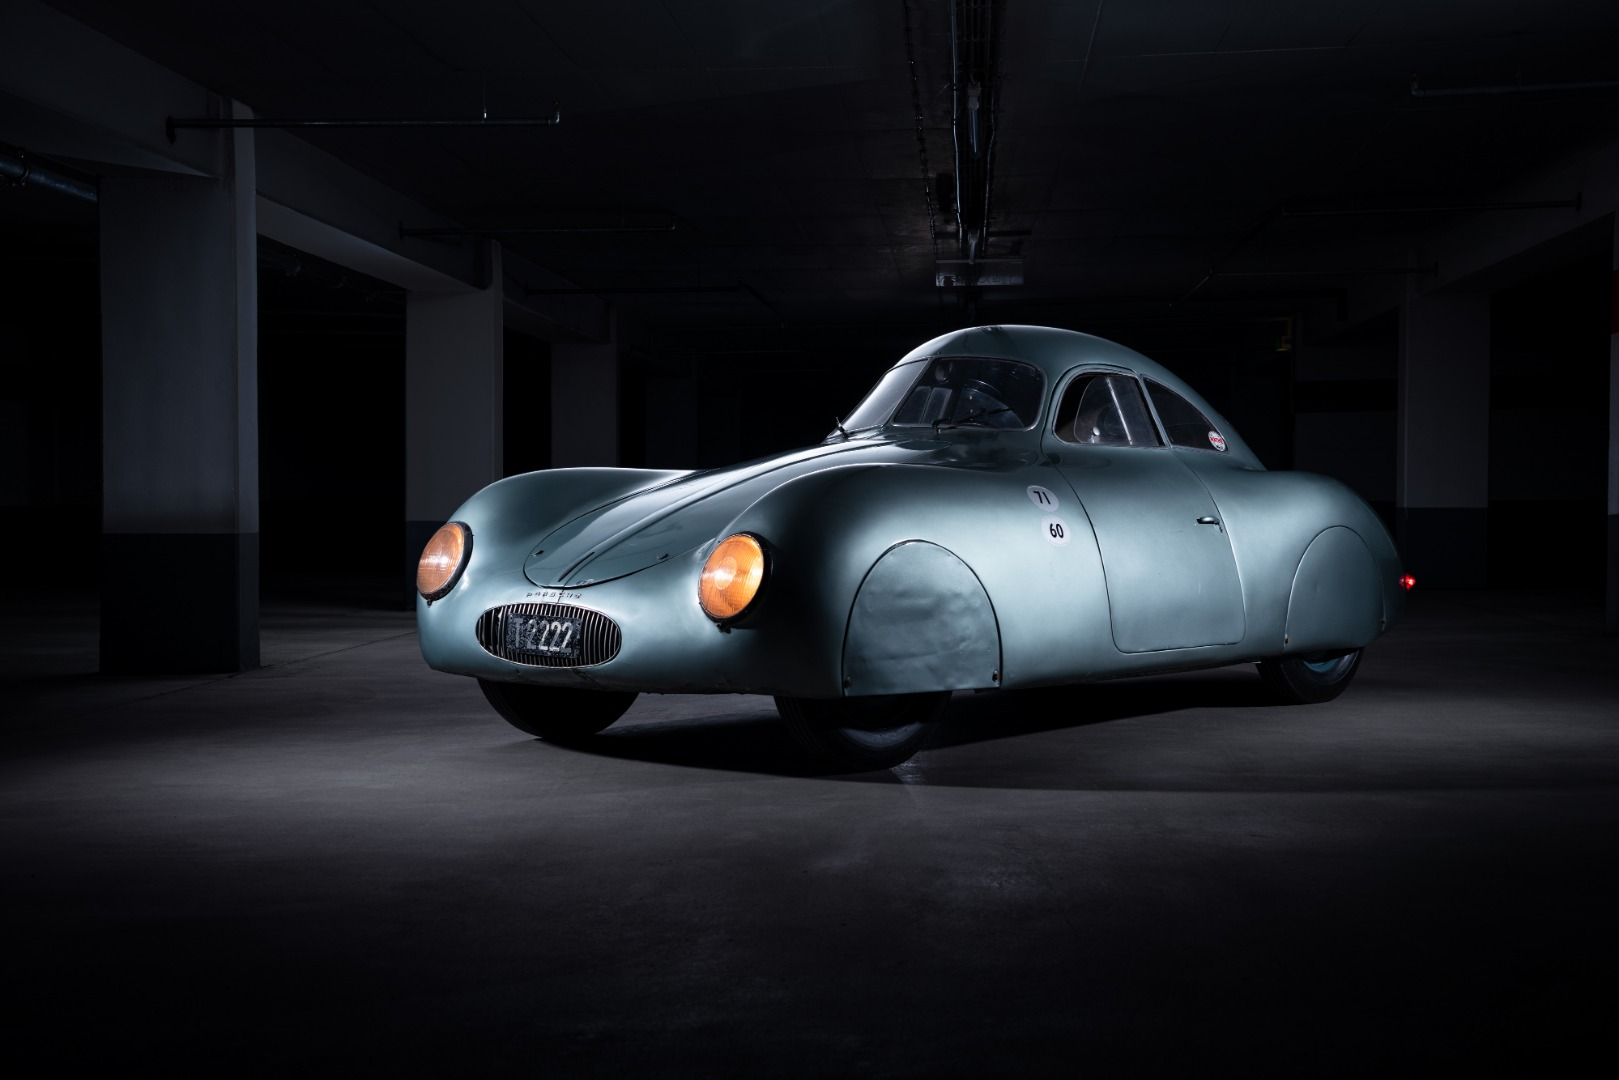 History in the making: The original Porsche heads to auction